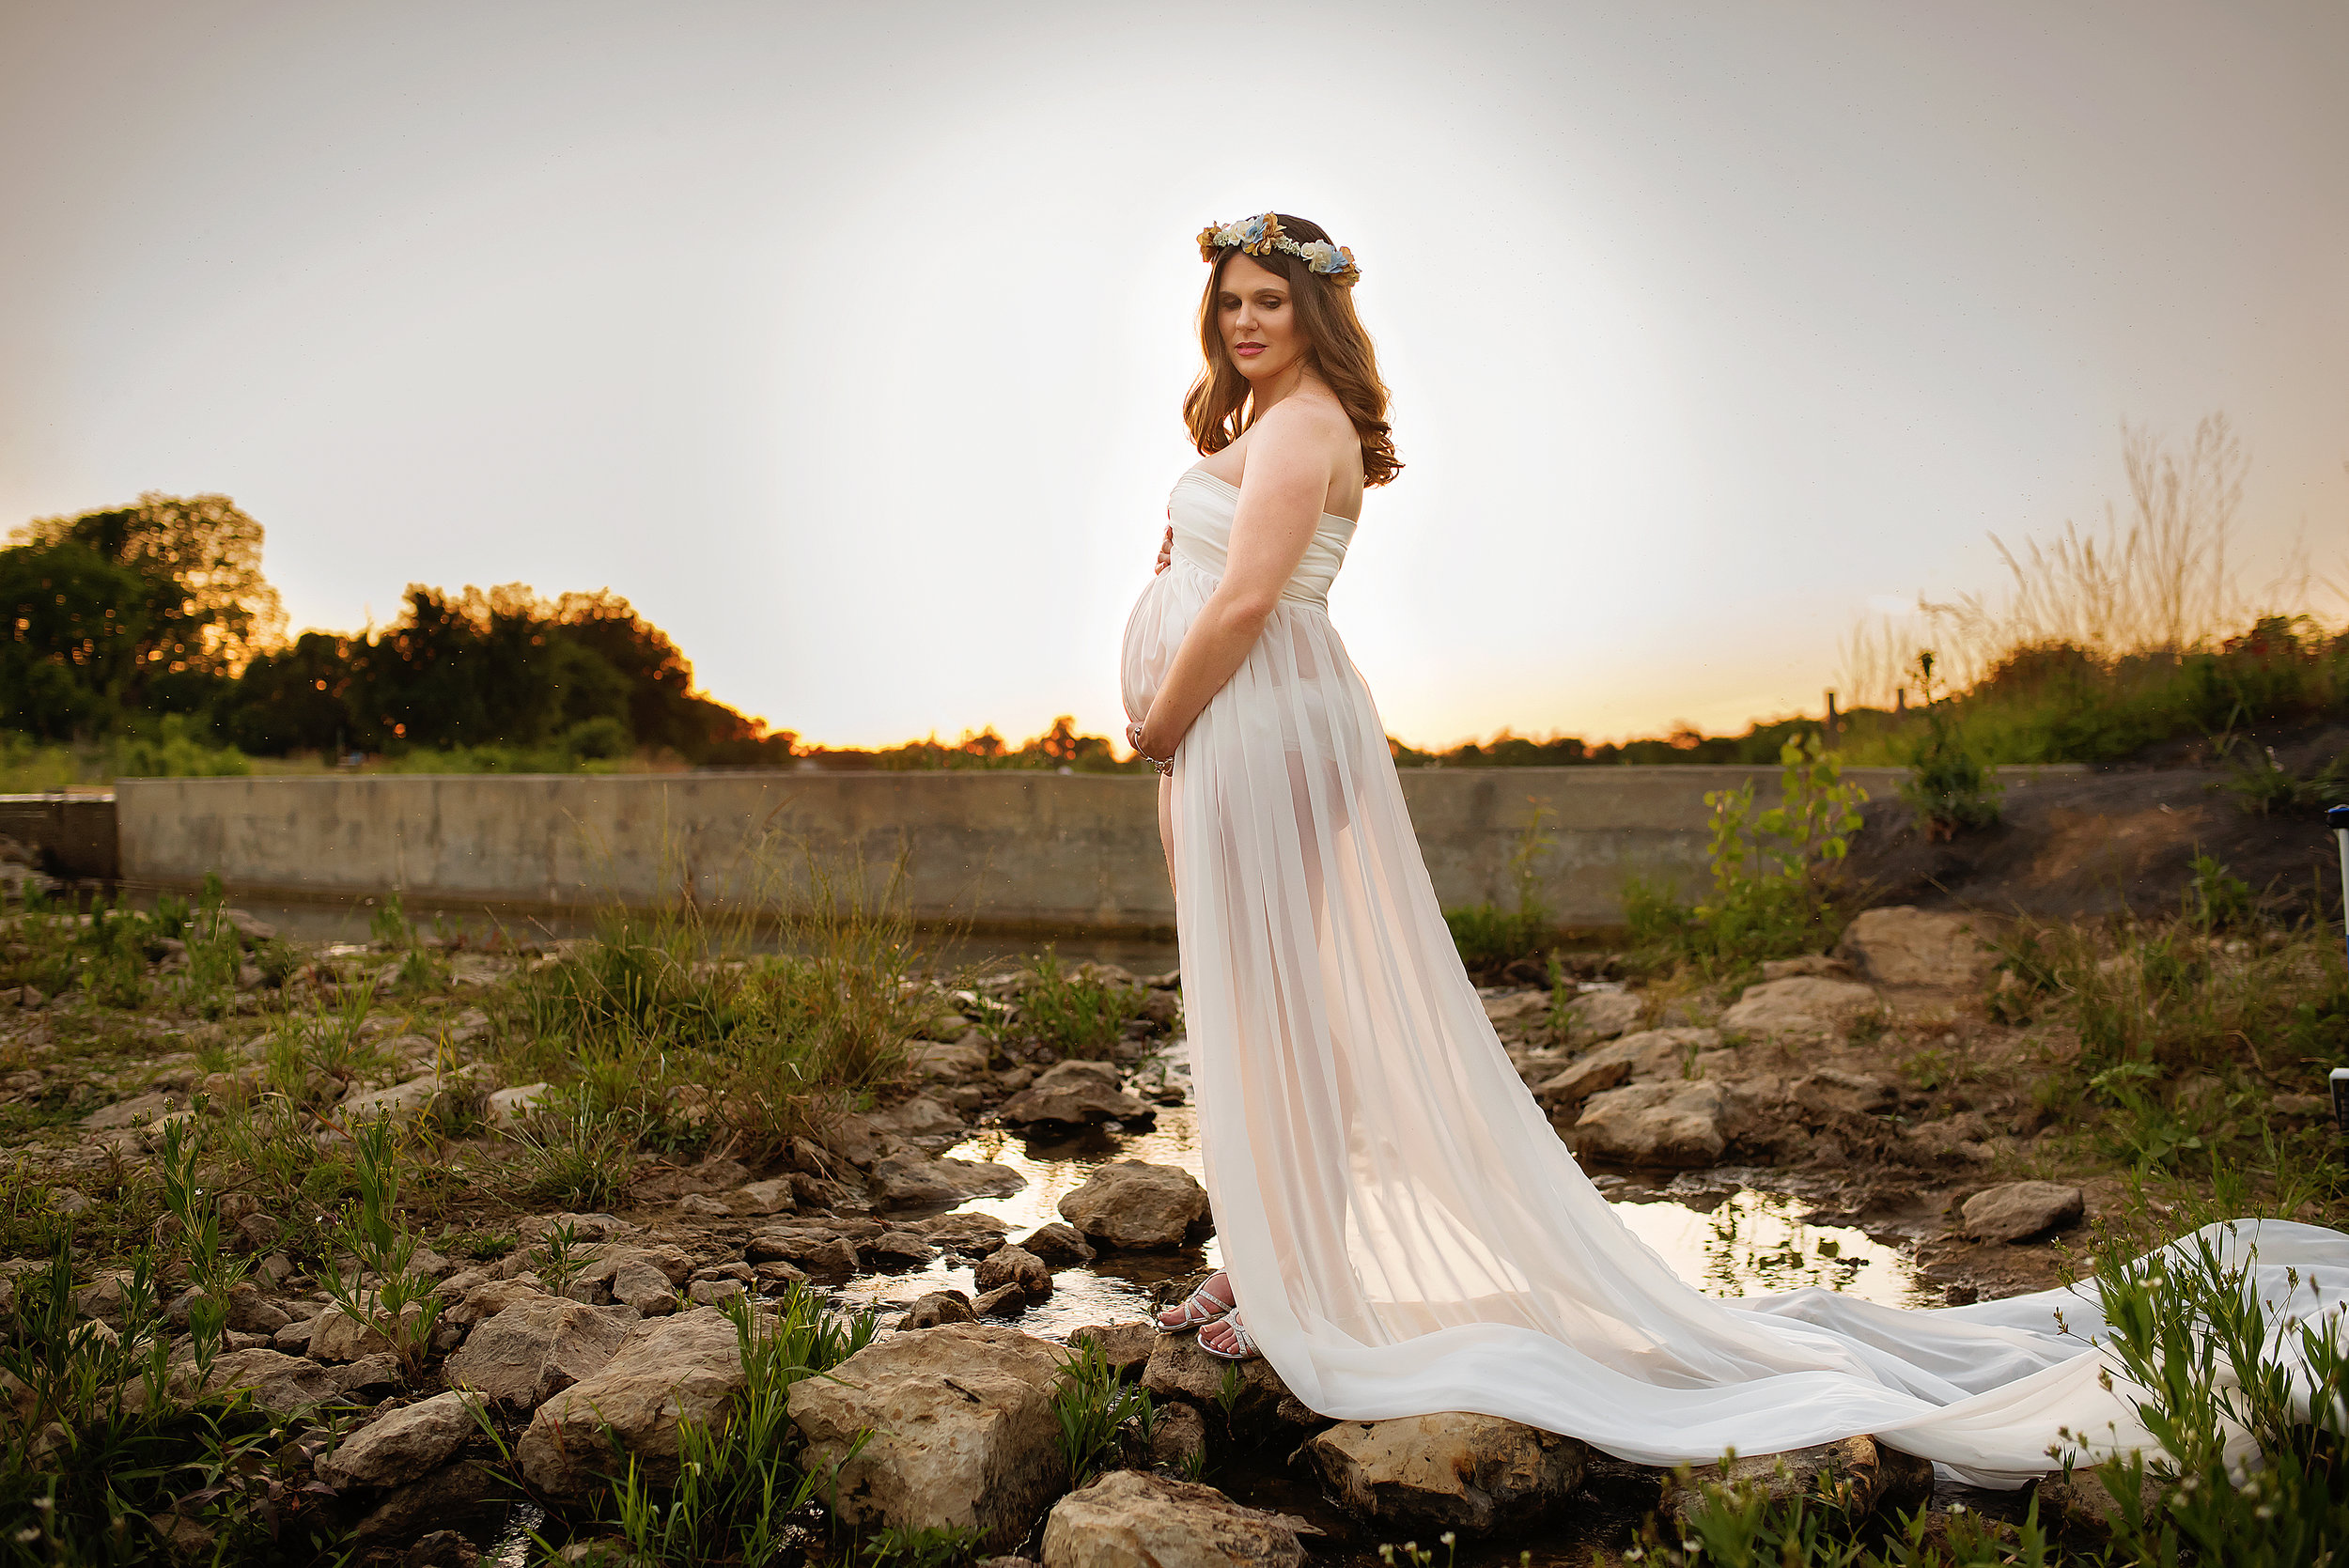 reina-legrand-photography-photographer-maternity-baby-haslet-colleyville-fort-worth-dallas-dfw-westlake-southlake-grapevine-D1.jpg